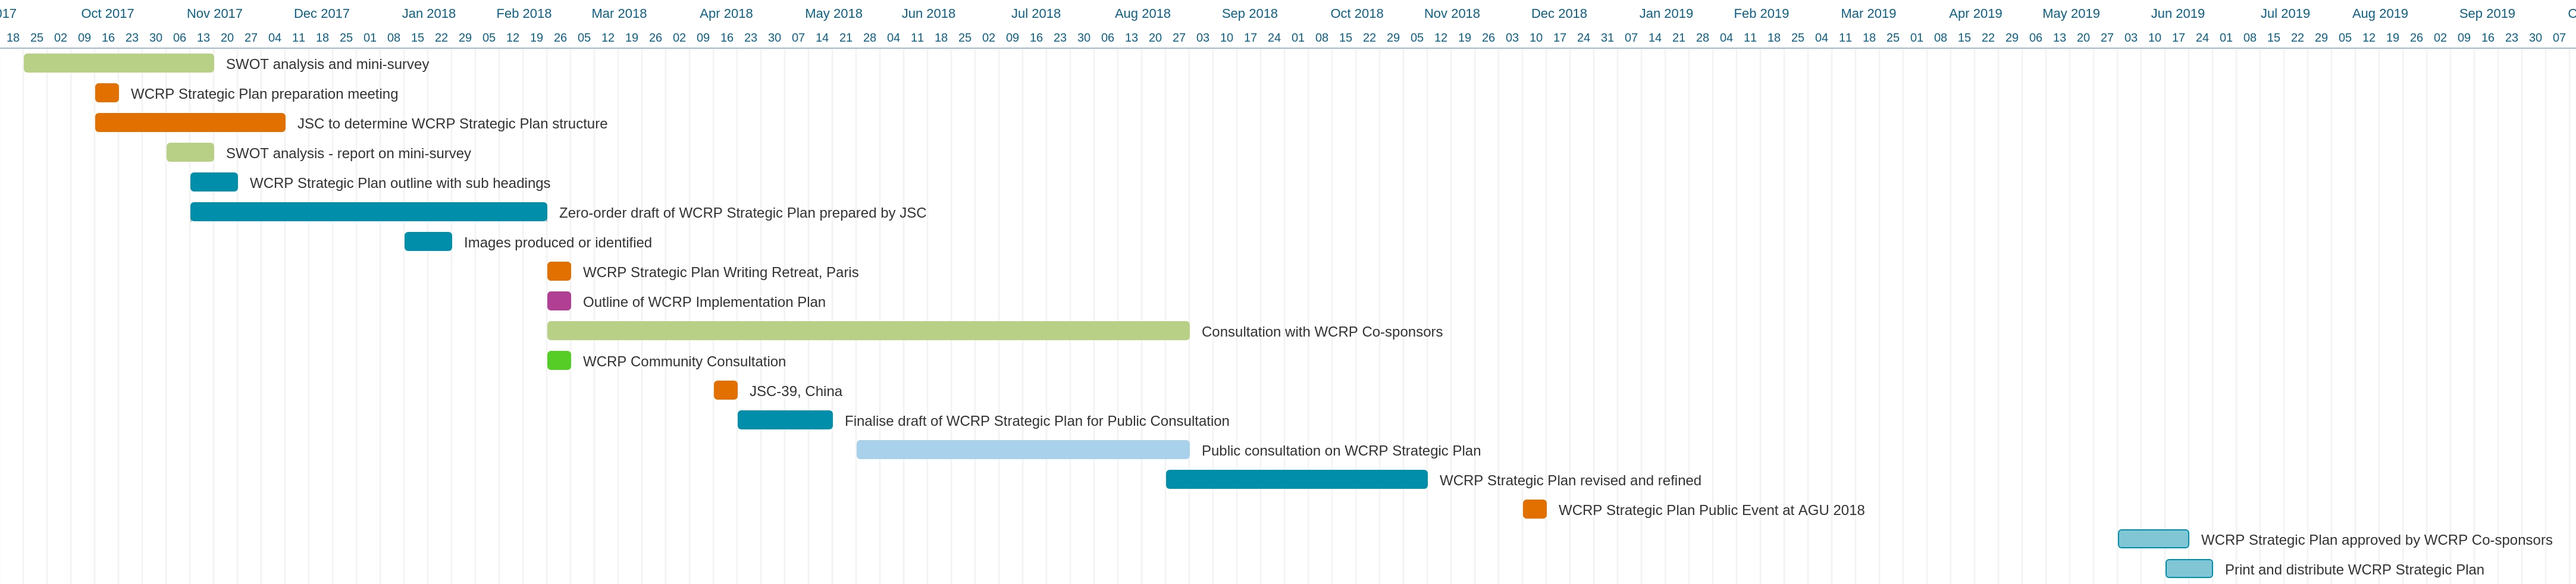 Gantt Chart of WCRP Strategic Plan